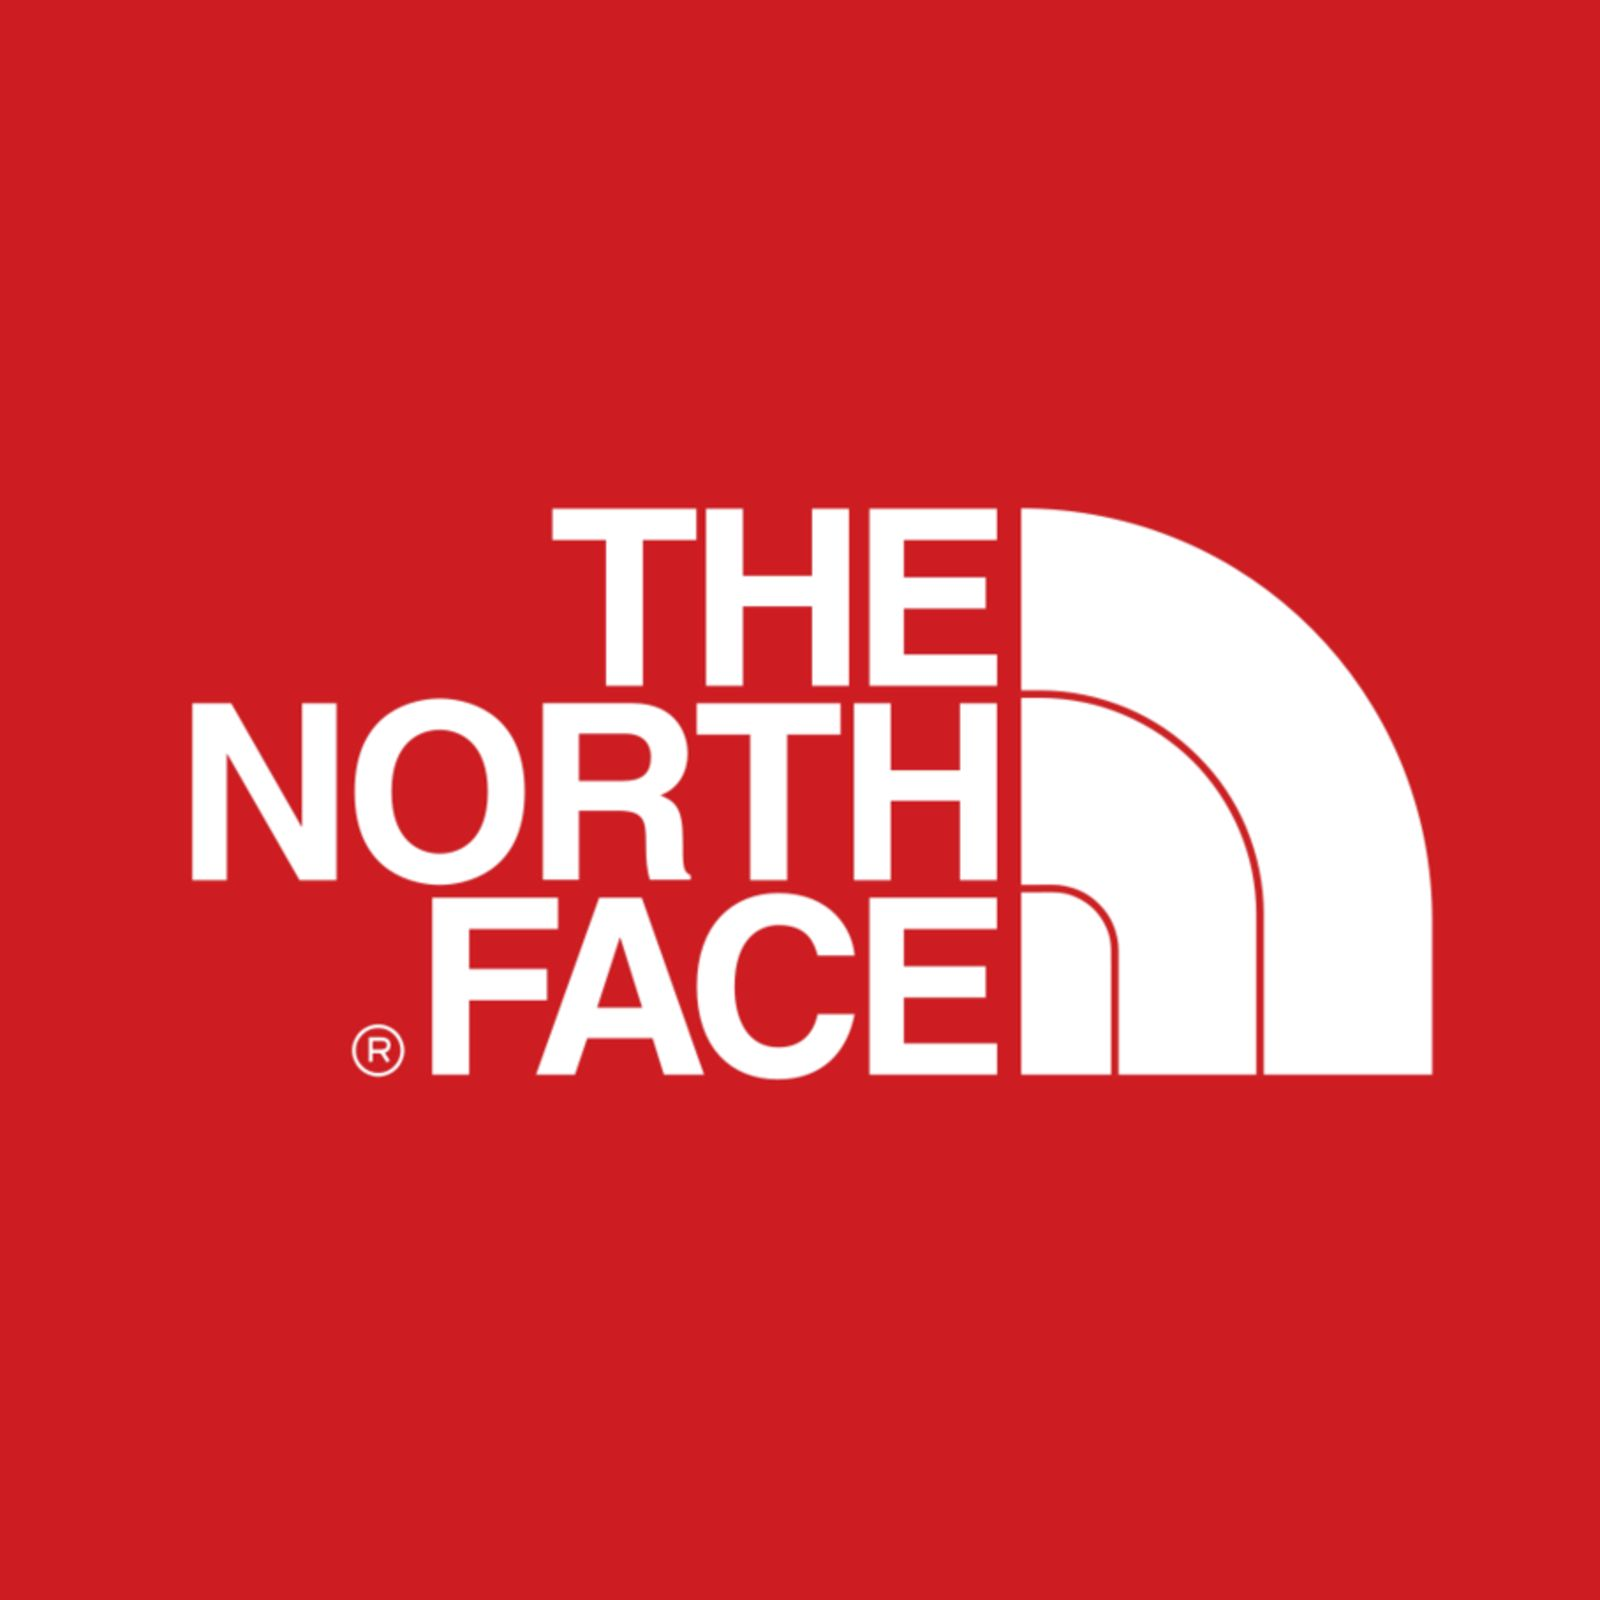 THE NORTH FACE (Afbeelding 1)